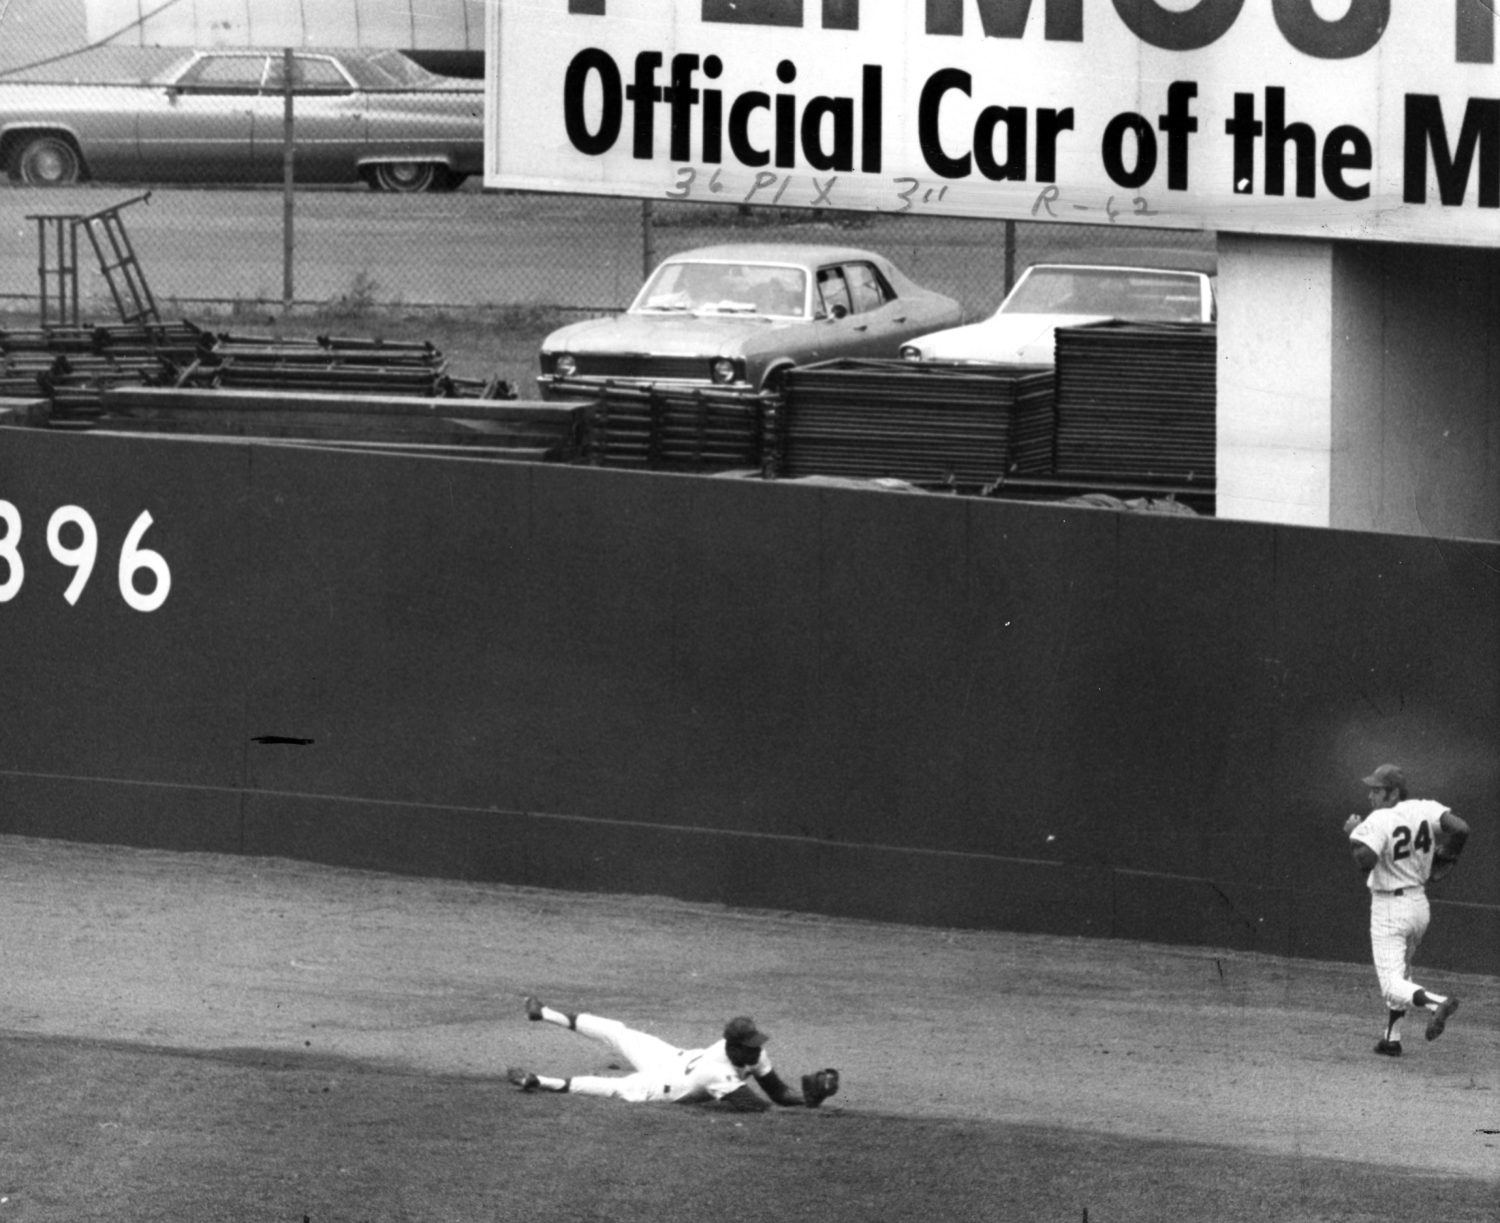 Agee's Amazing Catches in Game 3 of '69 World Series